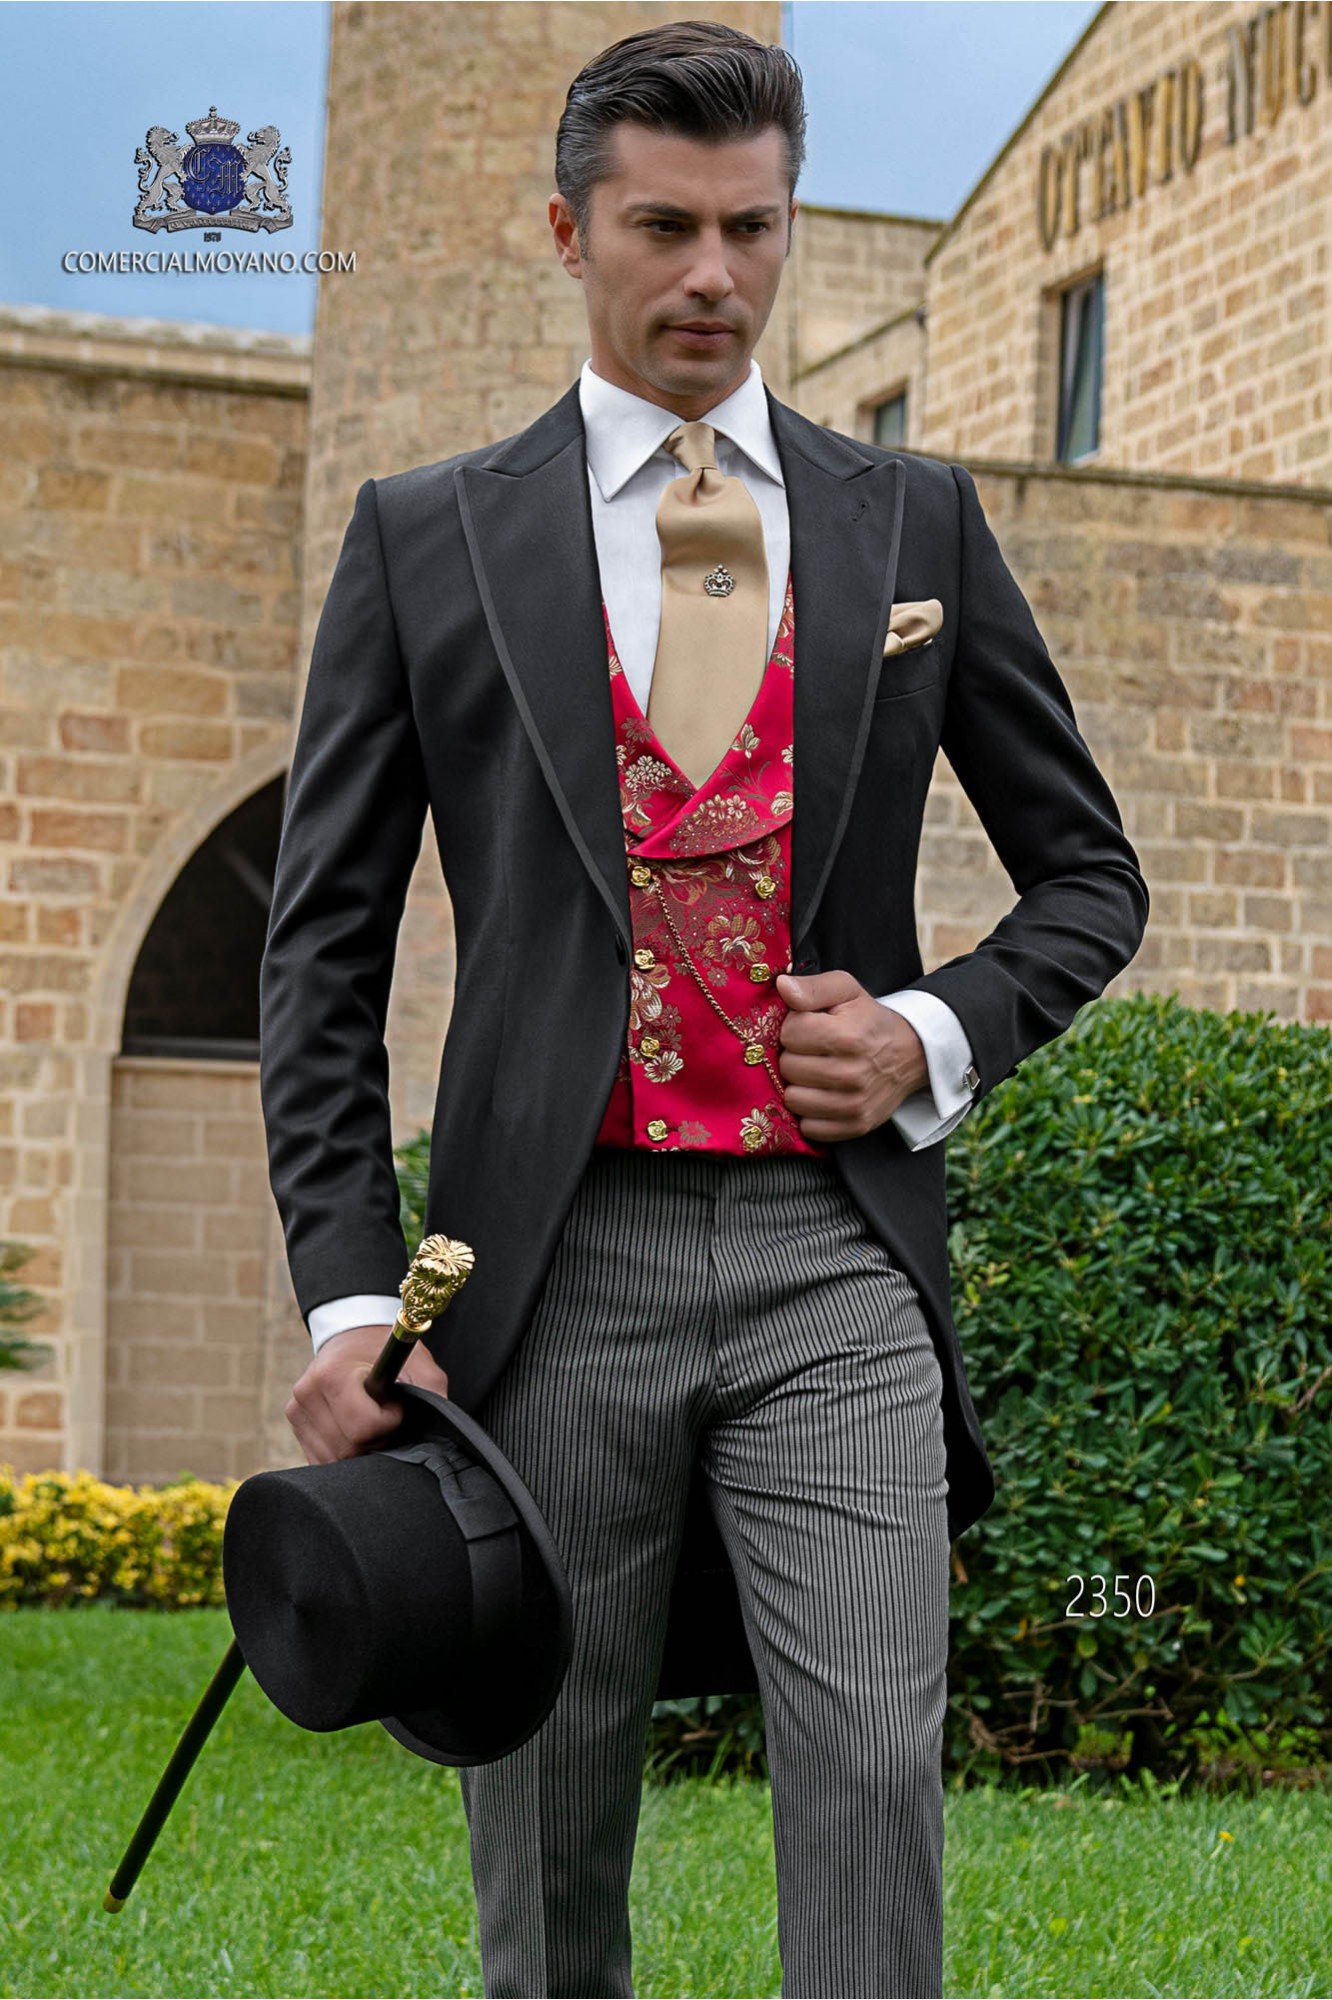 Italian morning suit wool mix black with pinstripe trousers